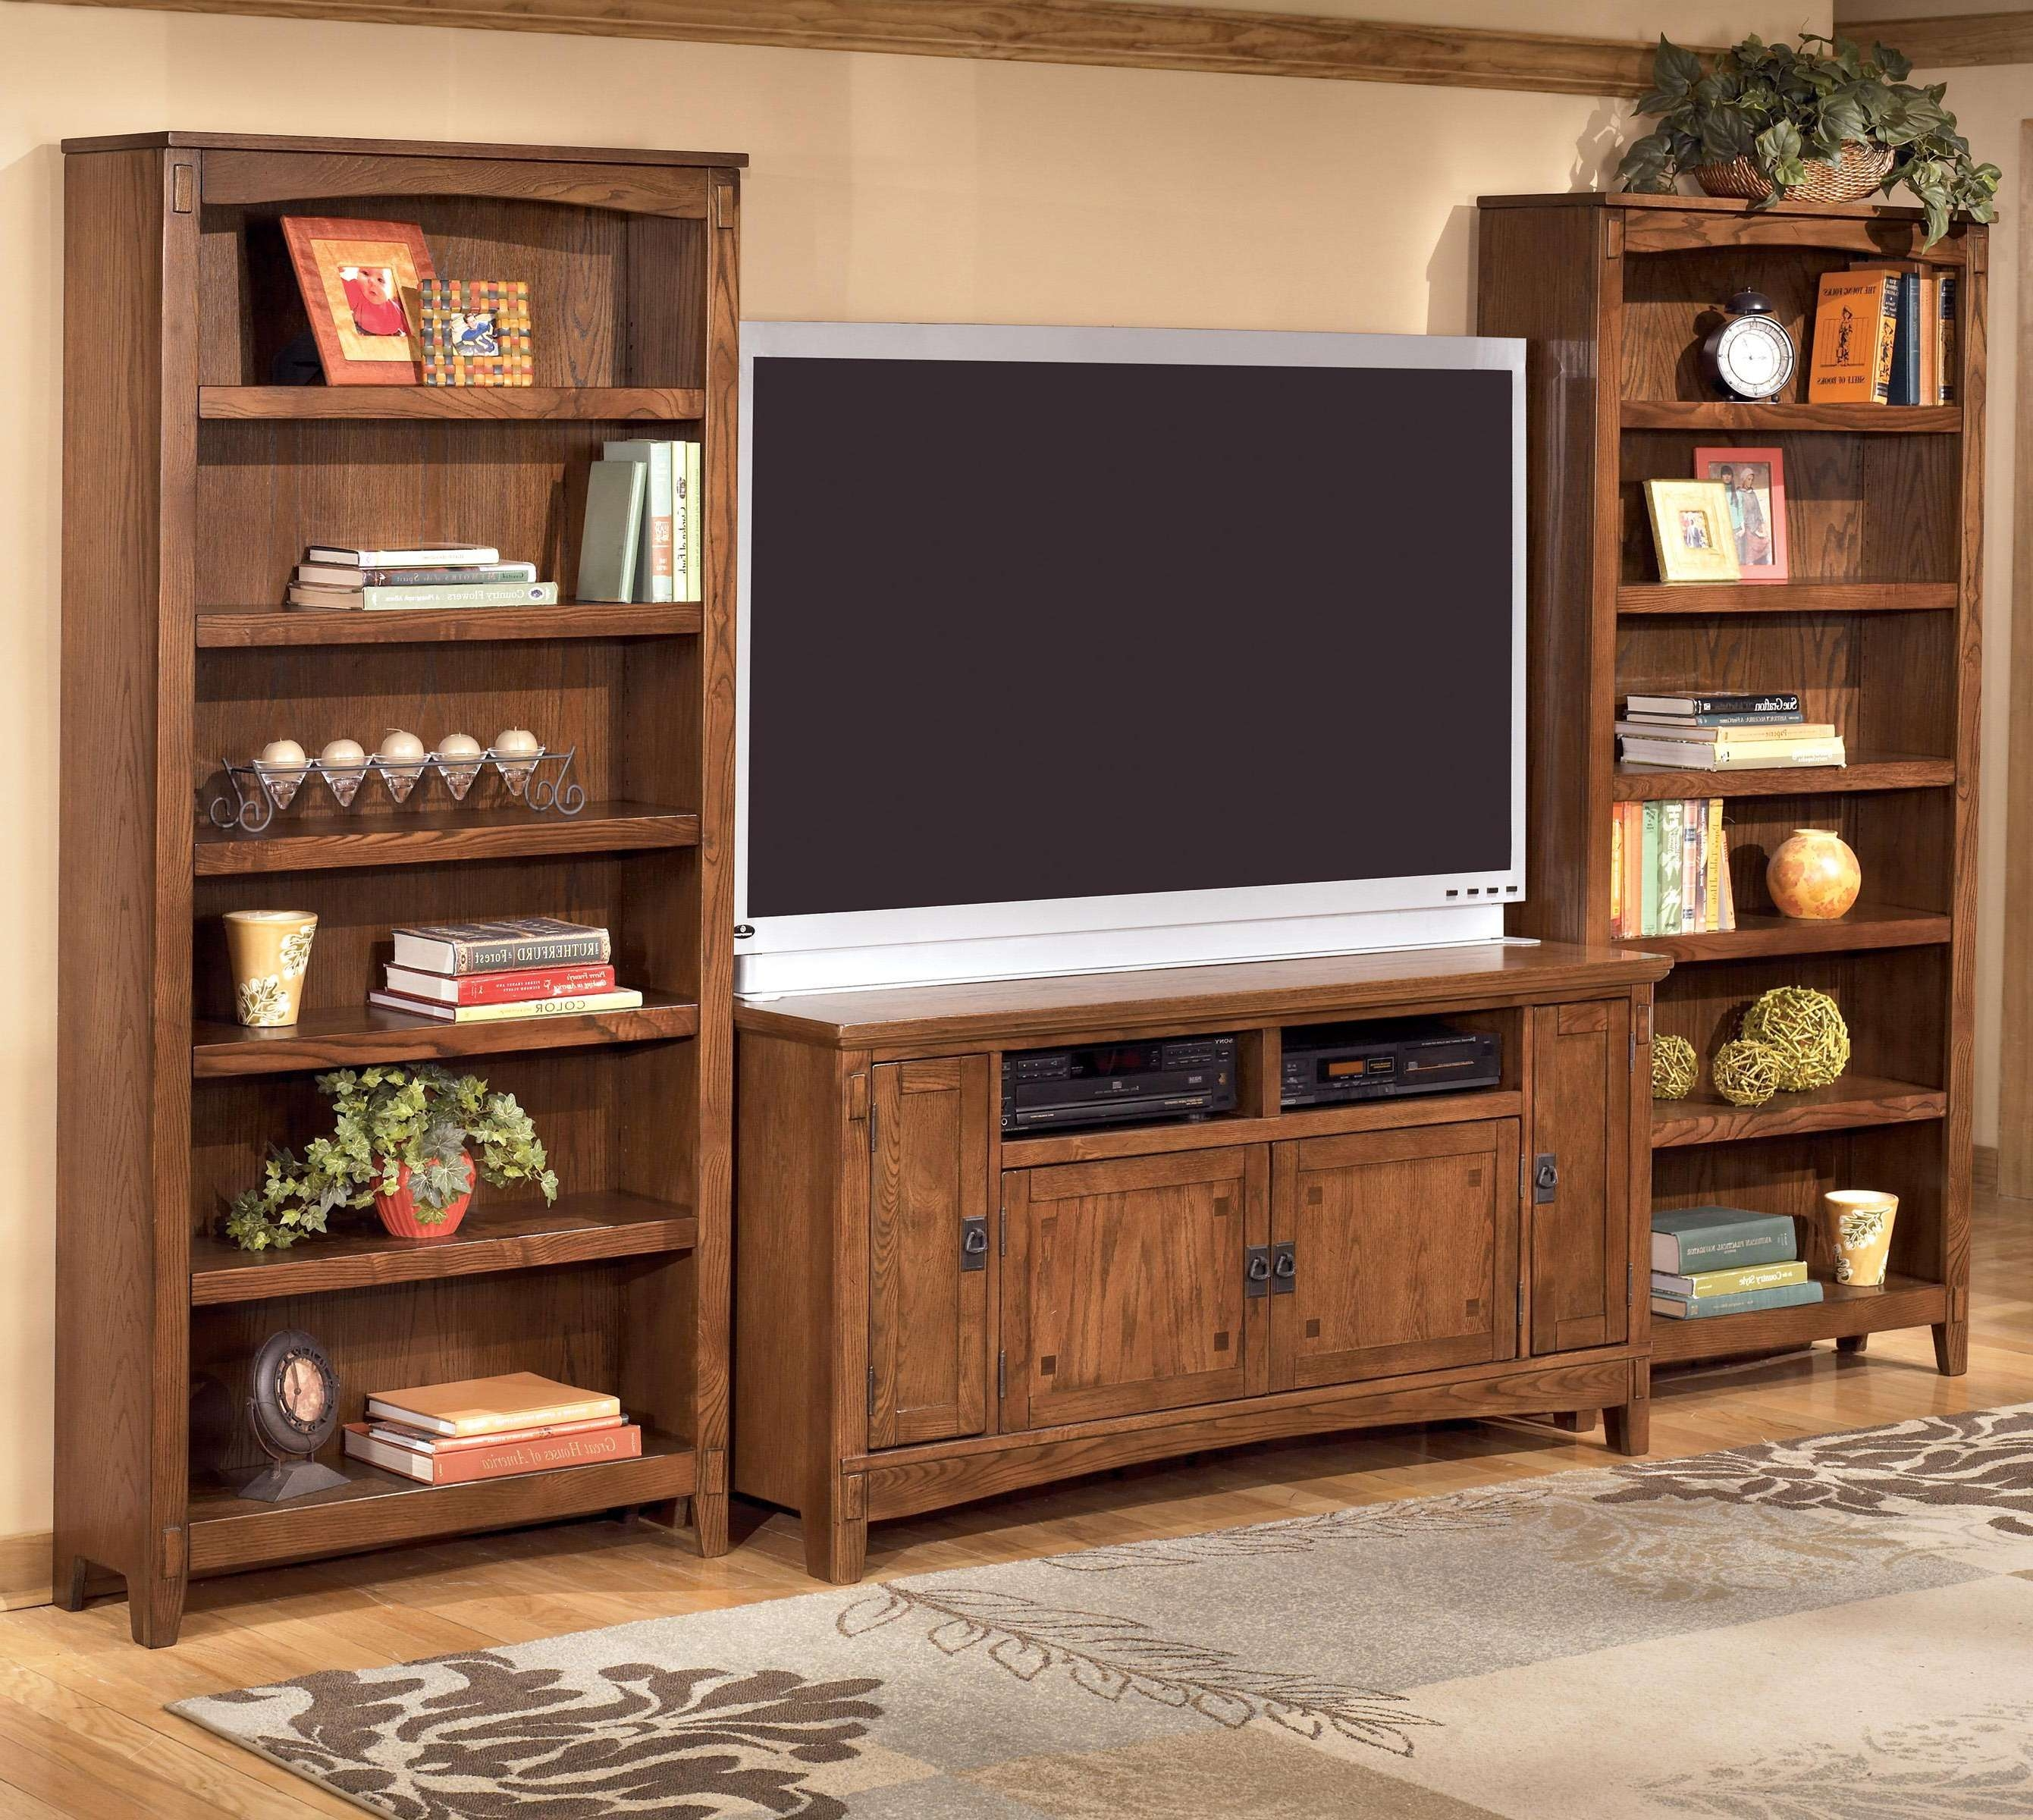 Wall Units: Astounding Tv Cabinet And Bookcase Corner Tv Cabinet Regarding Bookshelf Tv Stands Combo (View 7 of 15)